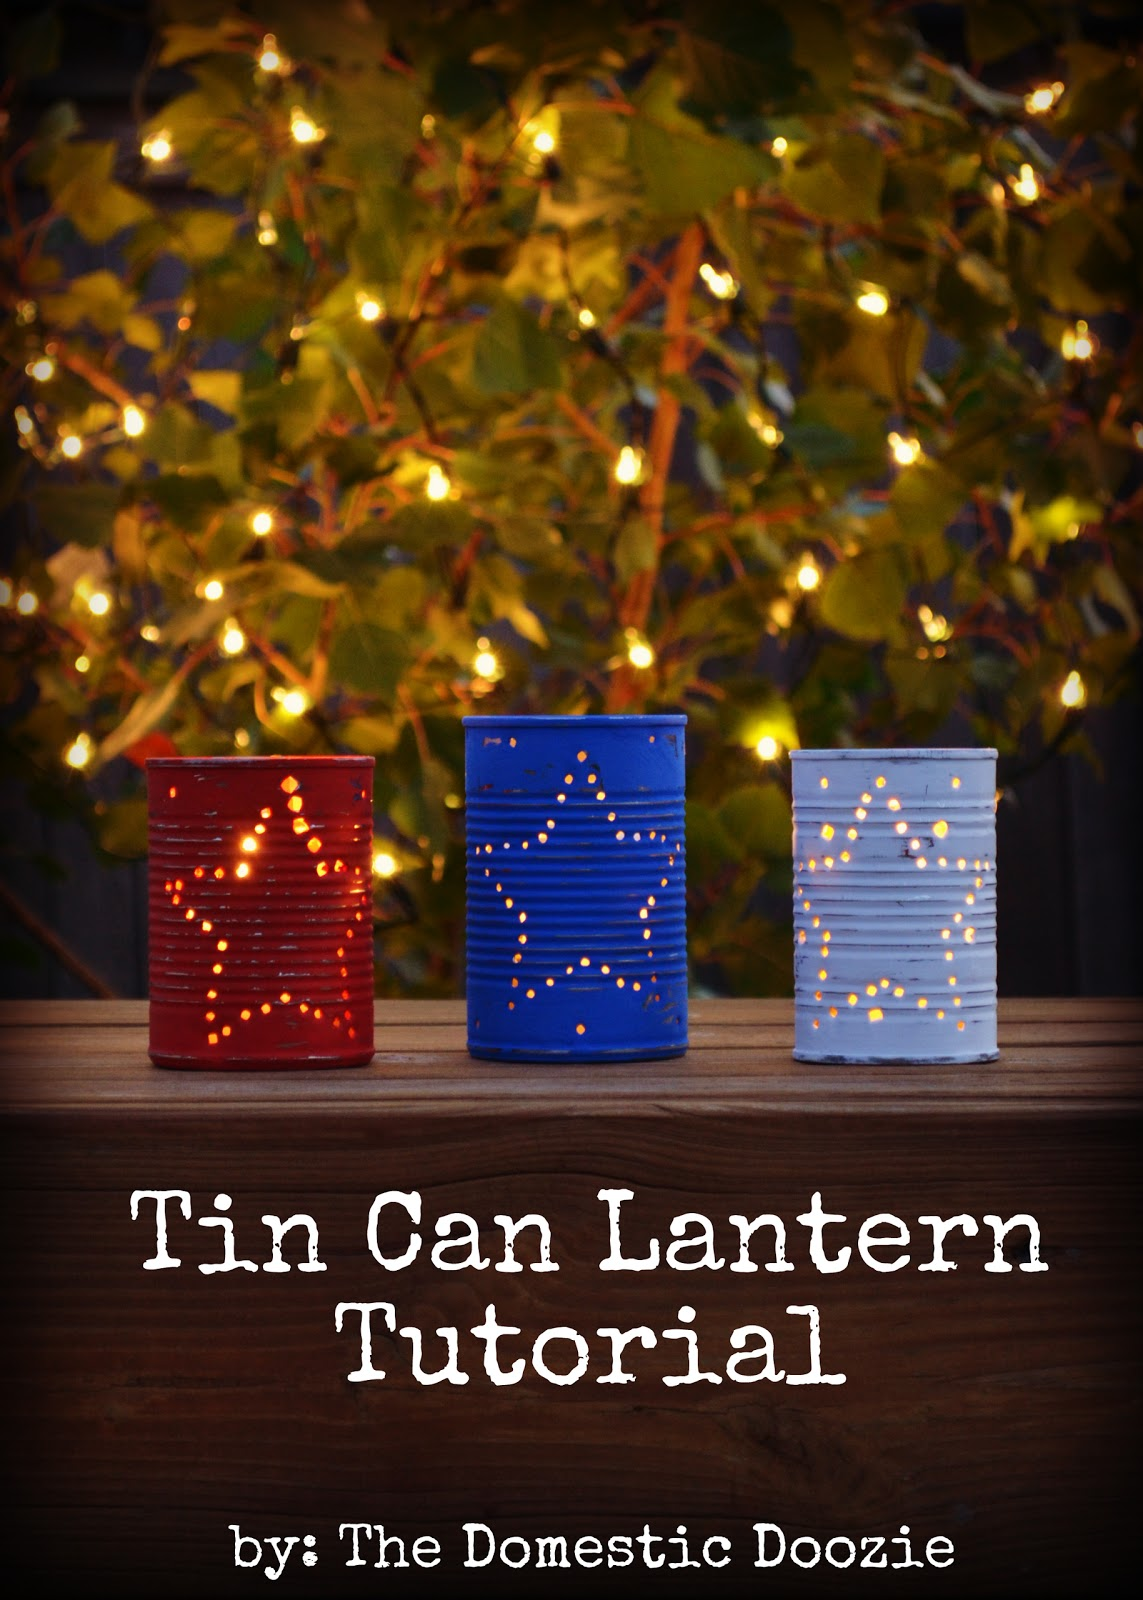 How to make tin can lanterns - I Ve Always Loved The Look Of Punched Tin It S Very Rustic Country And In My Mind Feels Very Patriotic So Of Course I Wanted To Make Some For The Upcoming